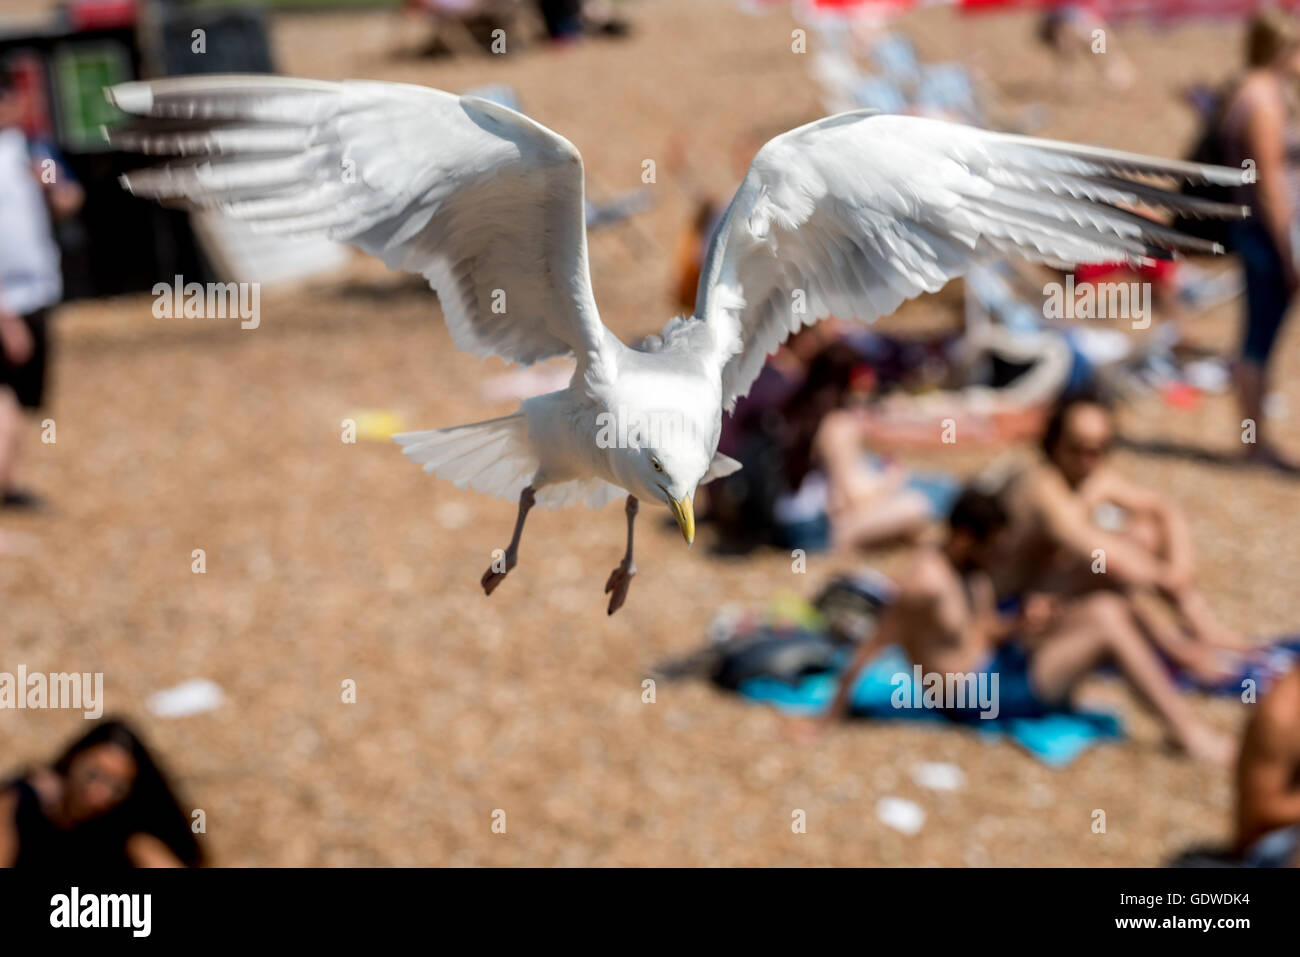 A seagull swooping over daytrippers on the beach at Brighton. - Stock Image